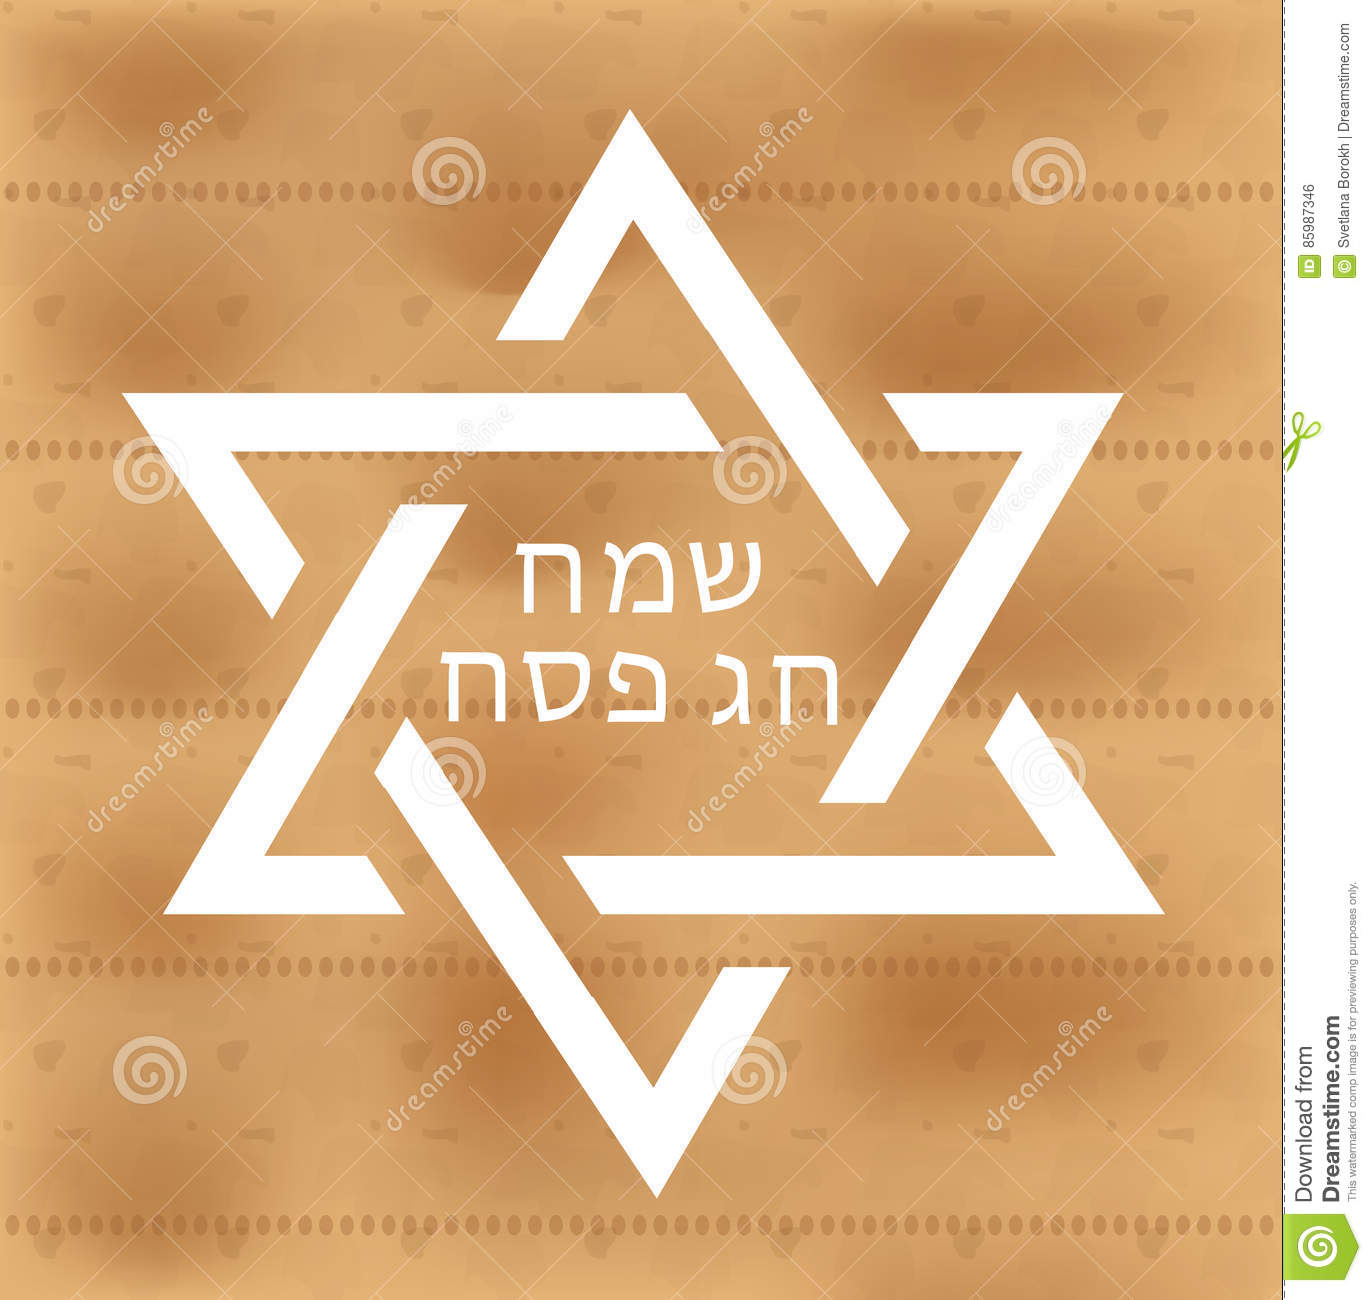 Passover Greeting Card With Matzah And The Star Of David Pesach